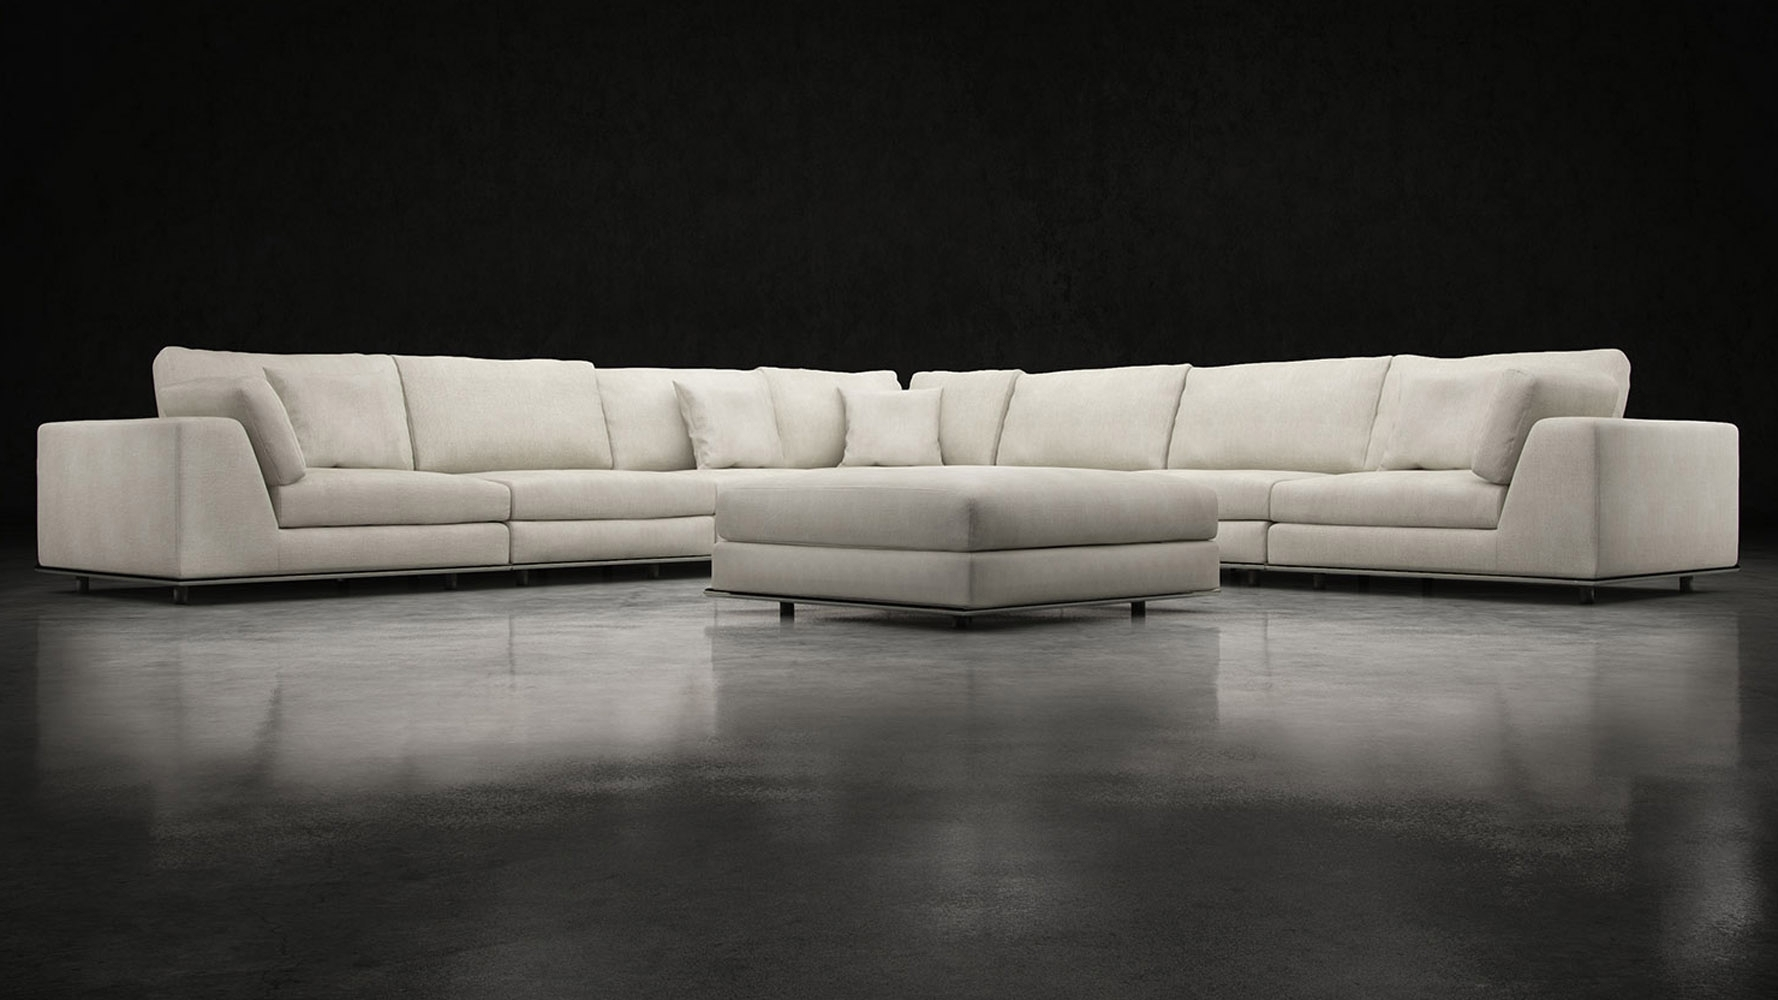 Furniture : 5060 Recliner Sectional Sofa Costco $699 Corner Couch in Joining Hardware Sectional Sofas (Image 4 of 10)